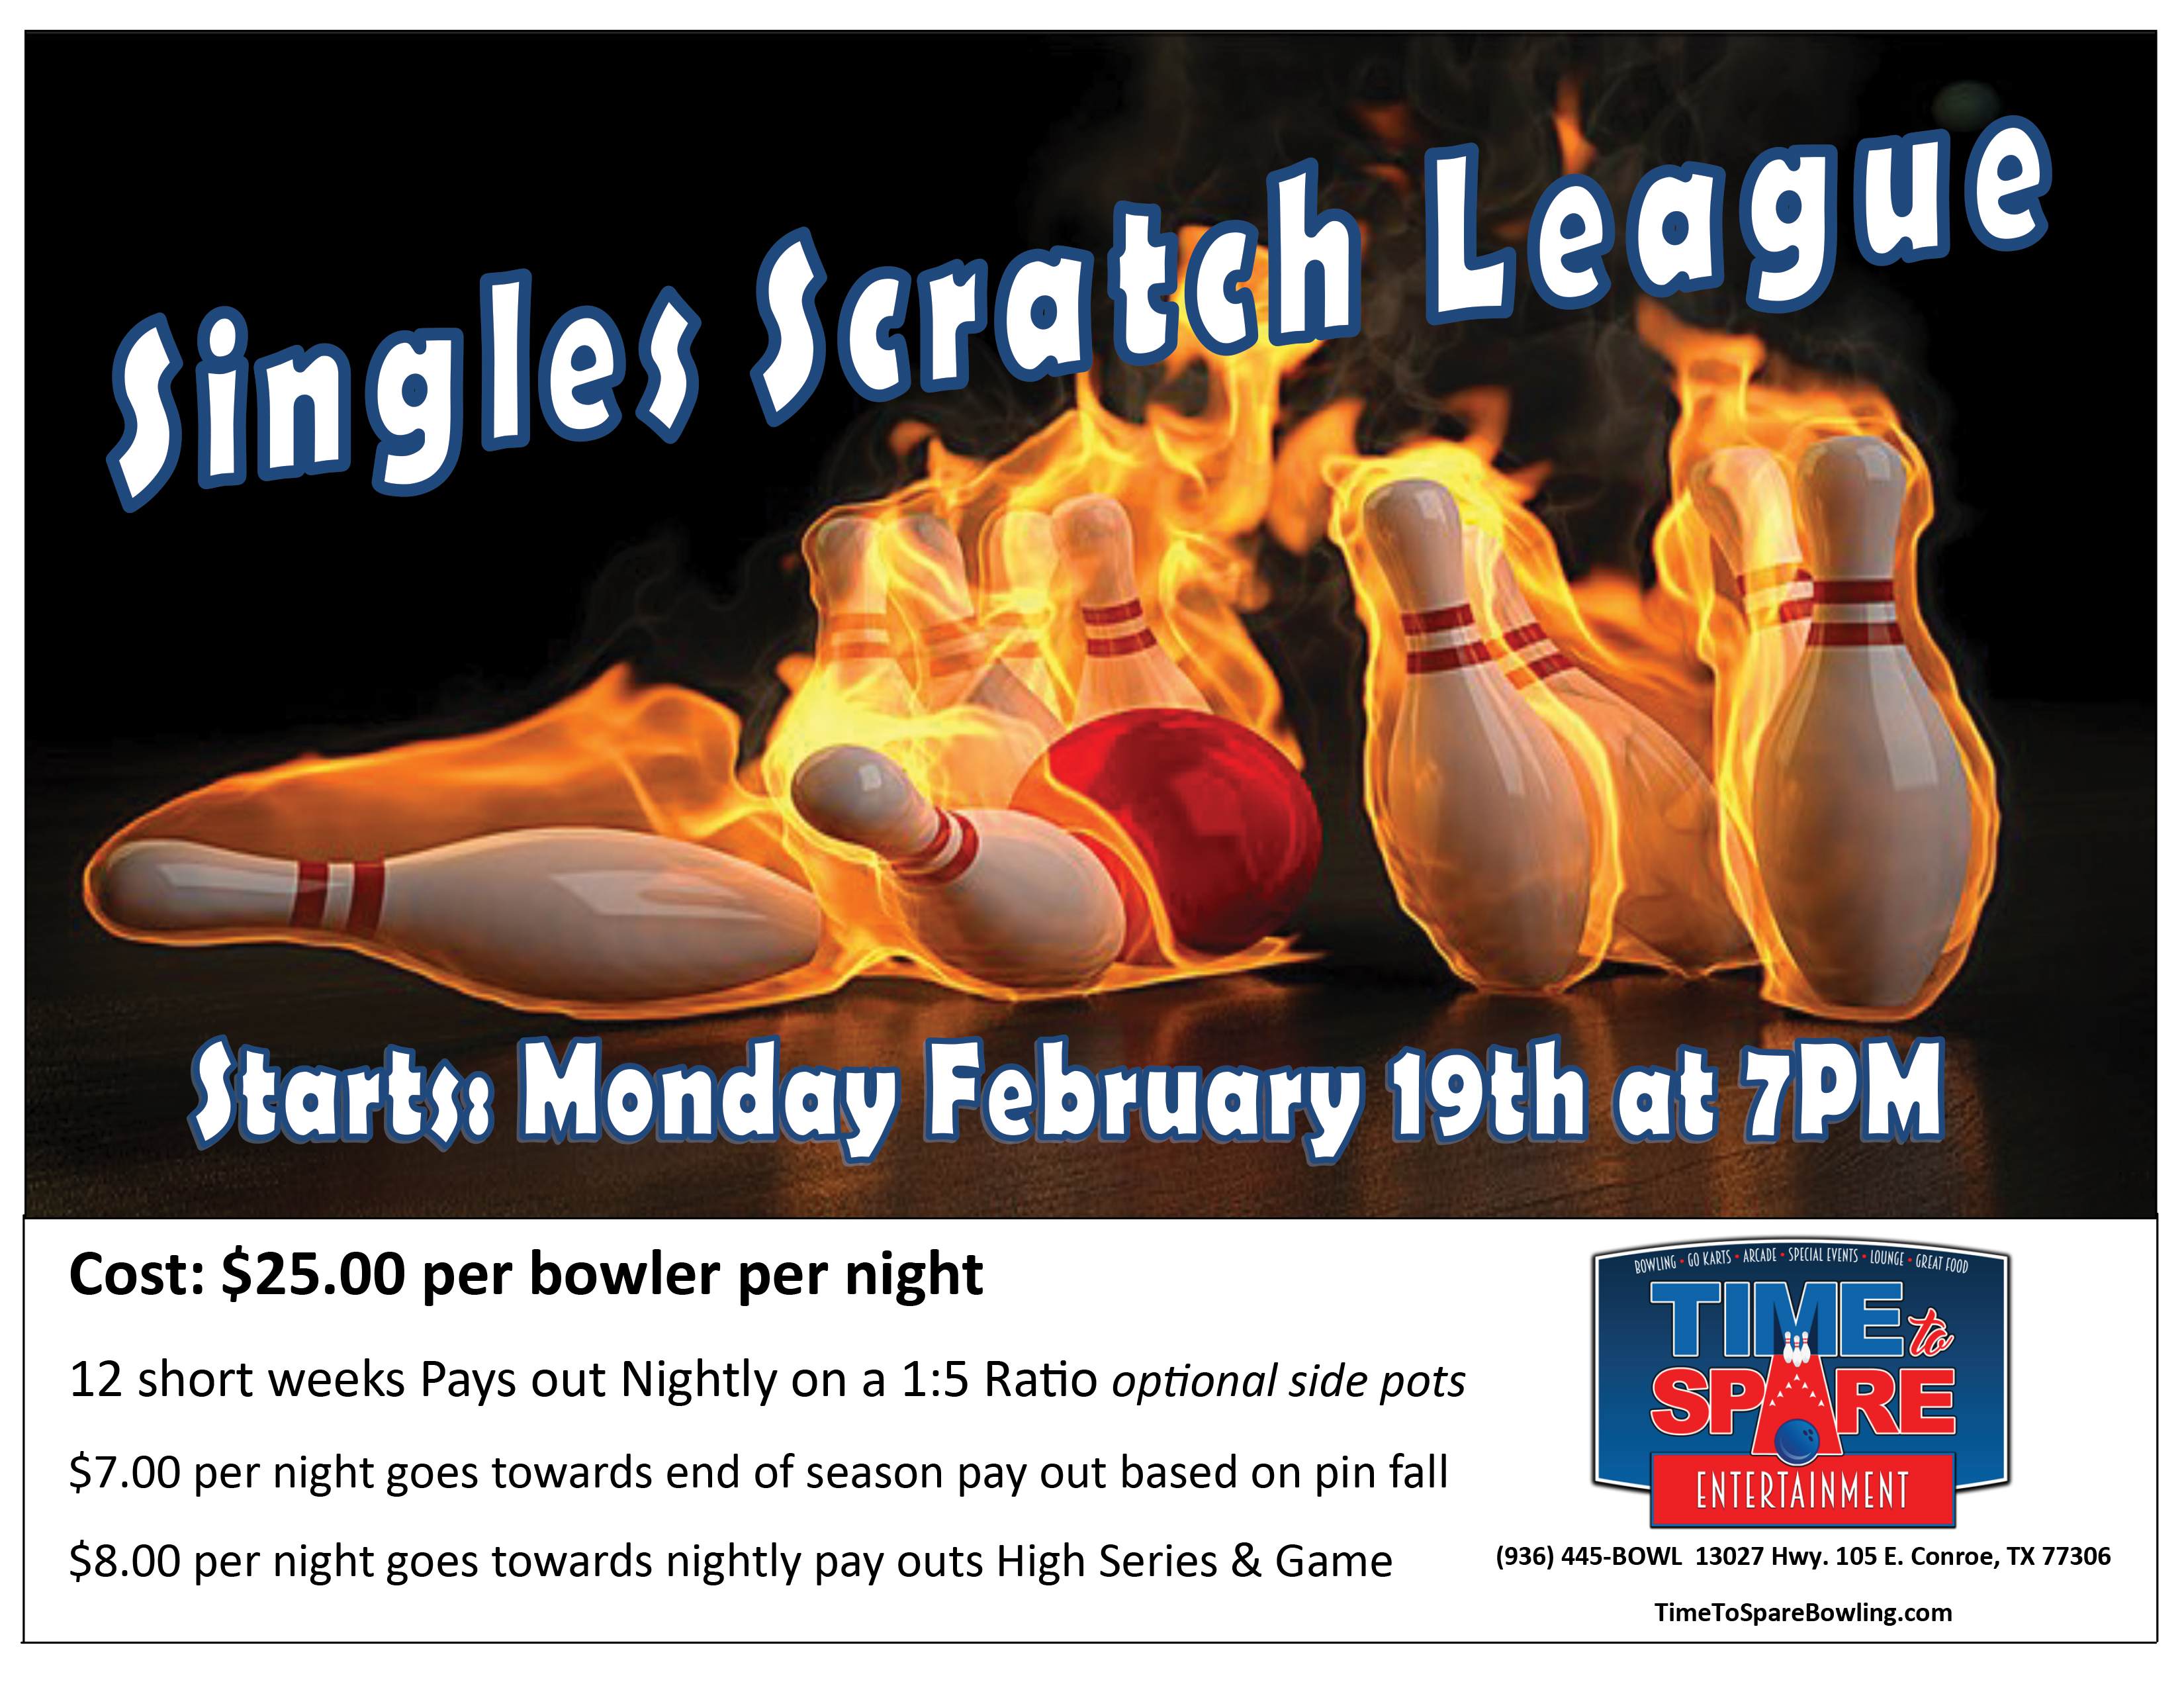 Singles Scratch League – Time to Spare Entertainment